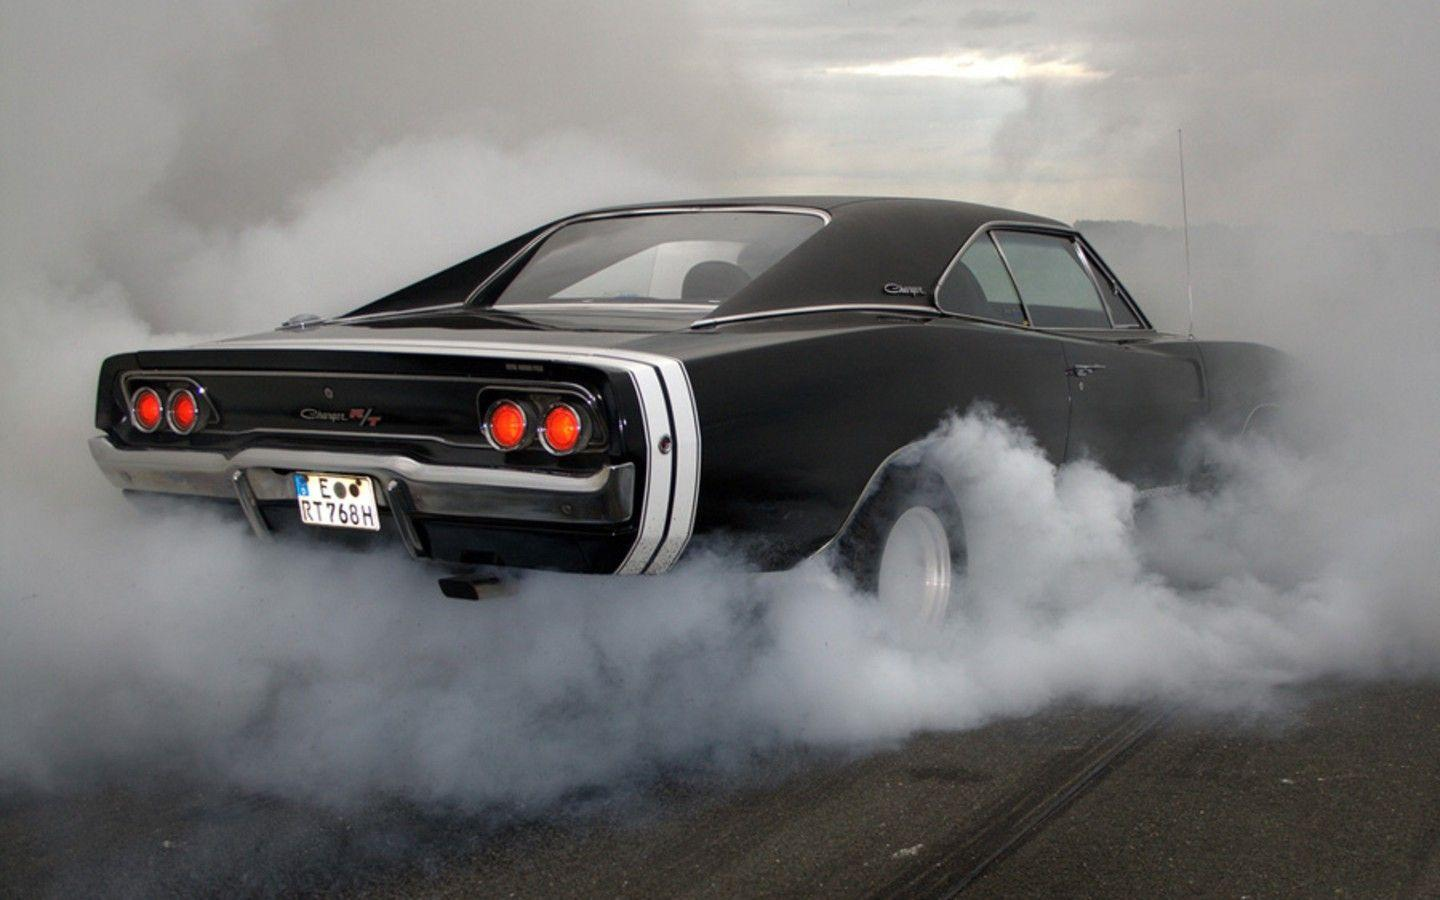 cars, muscle cars, Dodge, vehicles, 1968, burnout, Dodge Charger